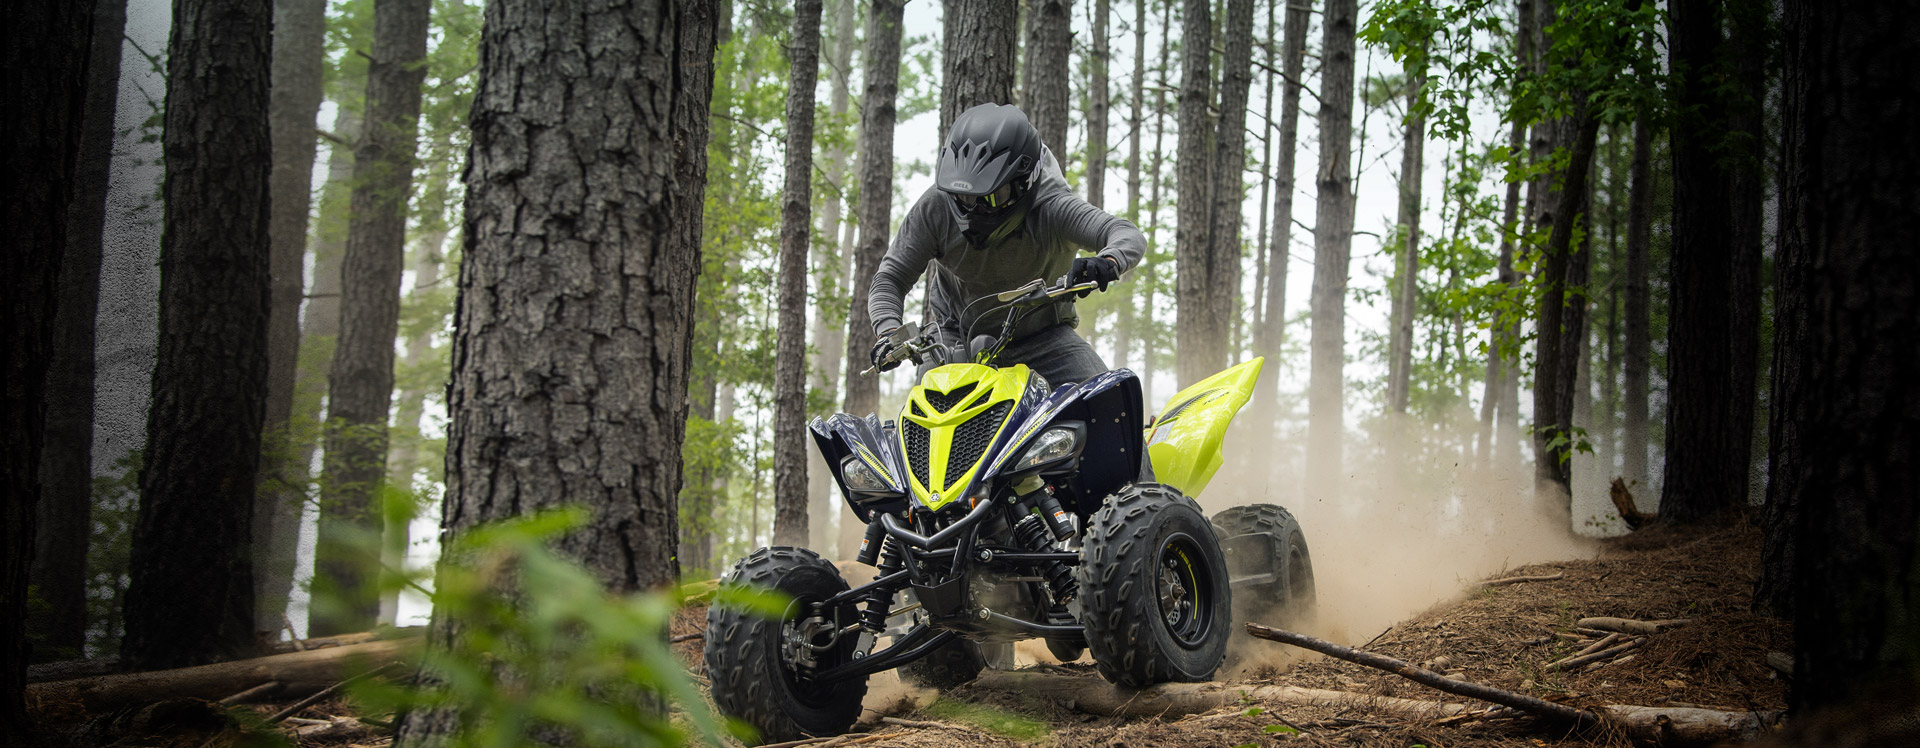 2020 Yamaha Raptor 700R SE Sport ATV - Model Home